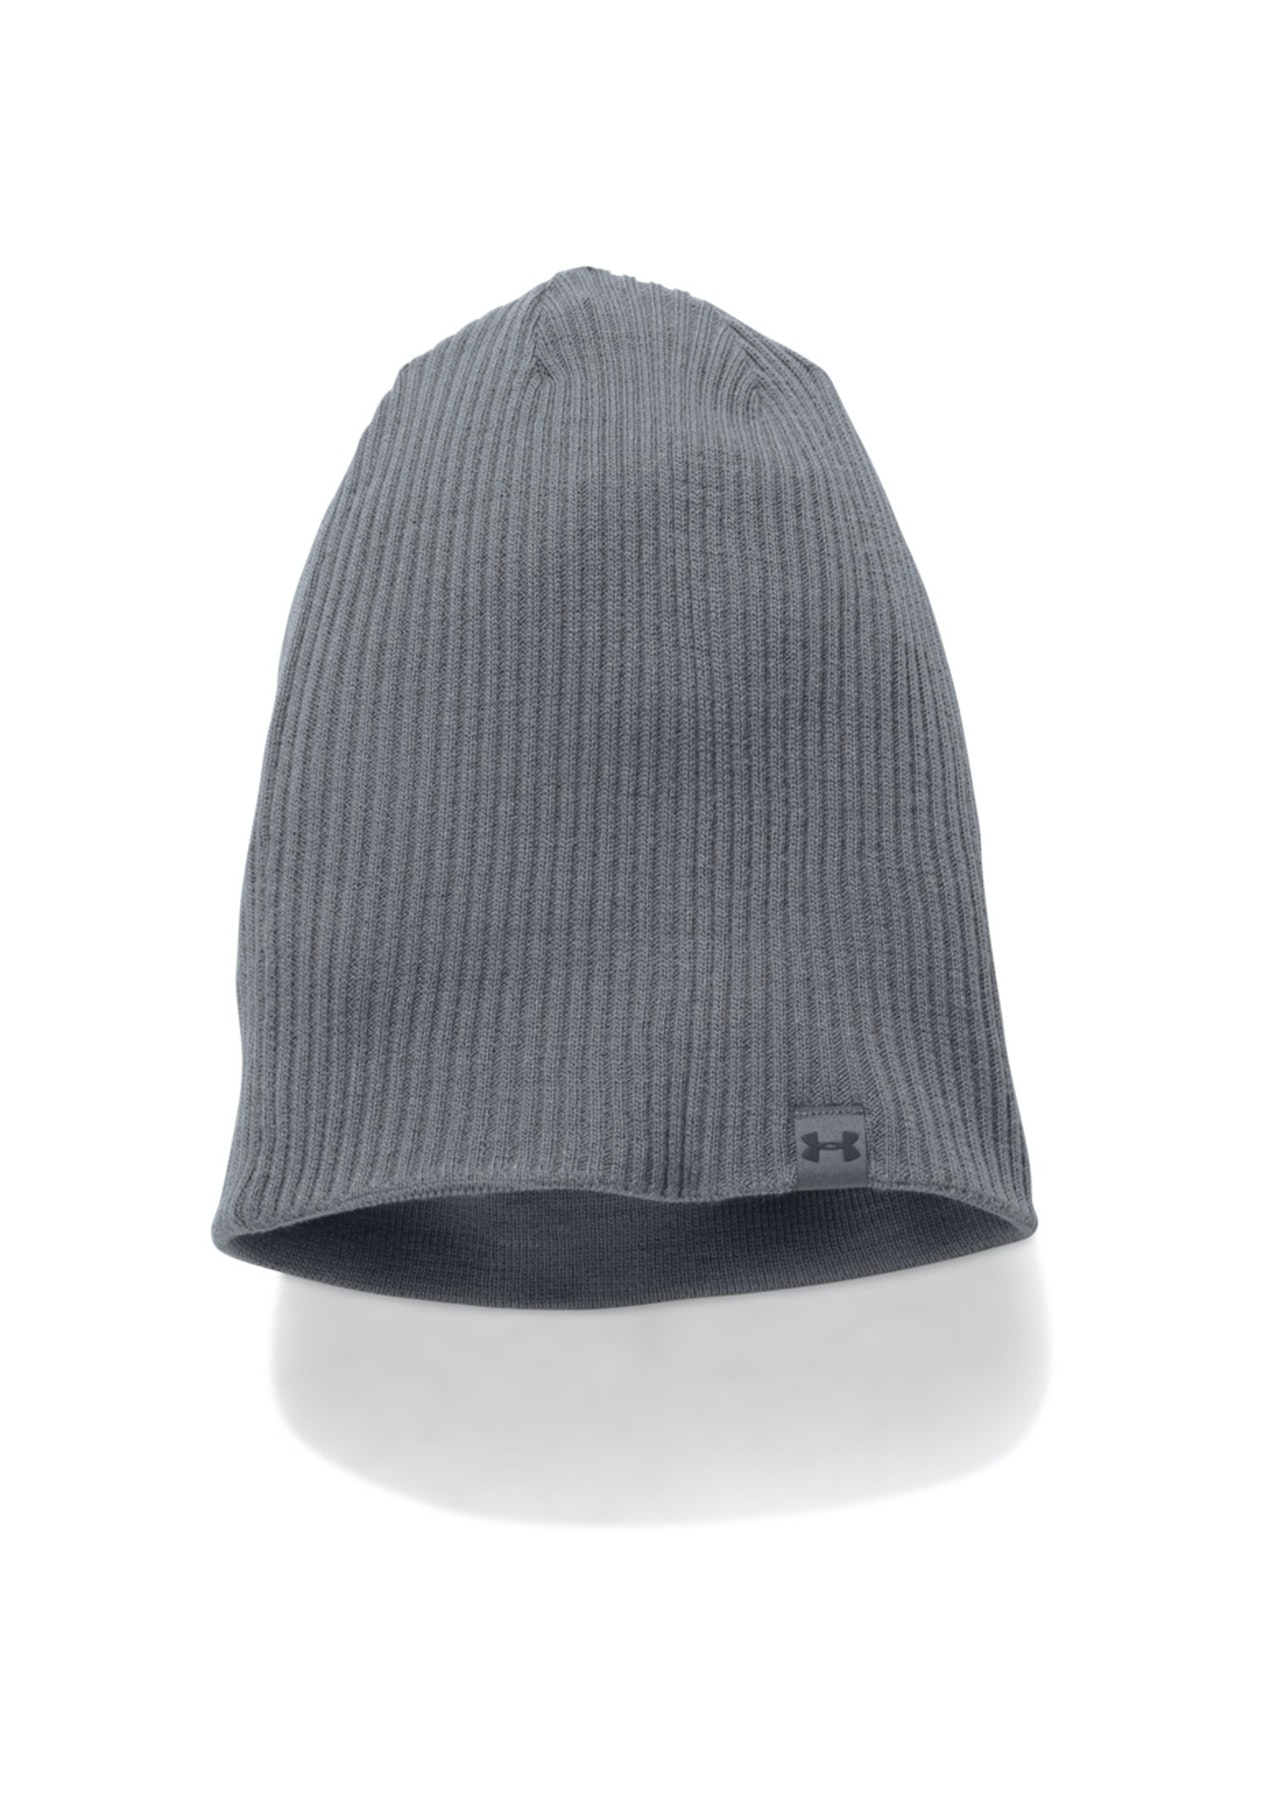 80839bb522dbd Under Armour Mens 4-in-1 Beanie 2.0 - Boxing Day Under Armour - Onceit